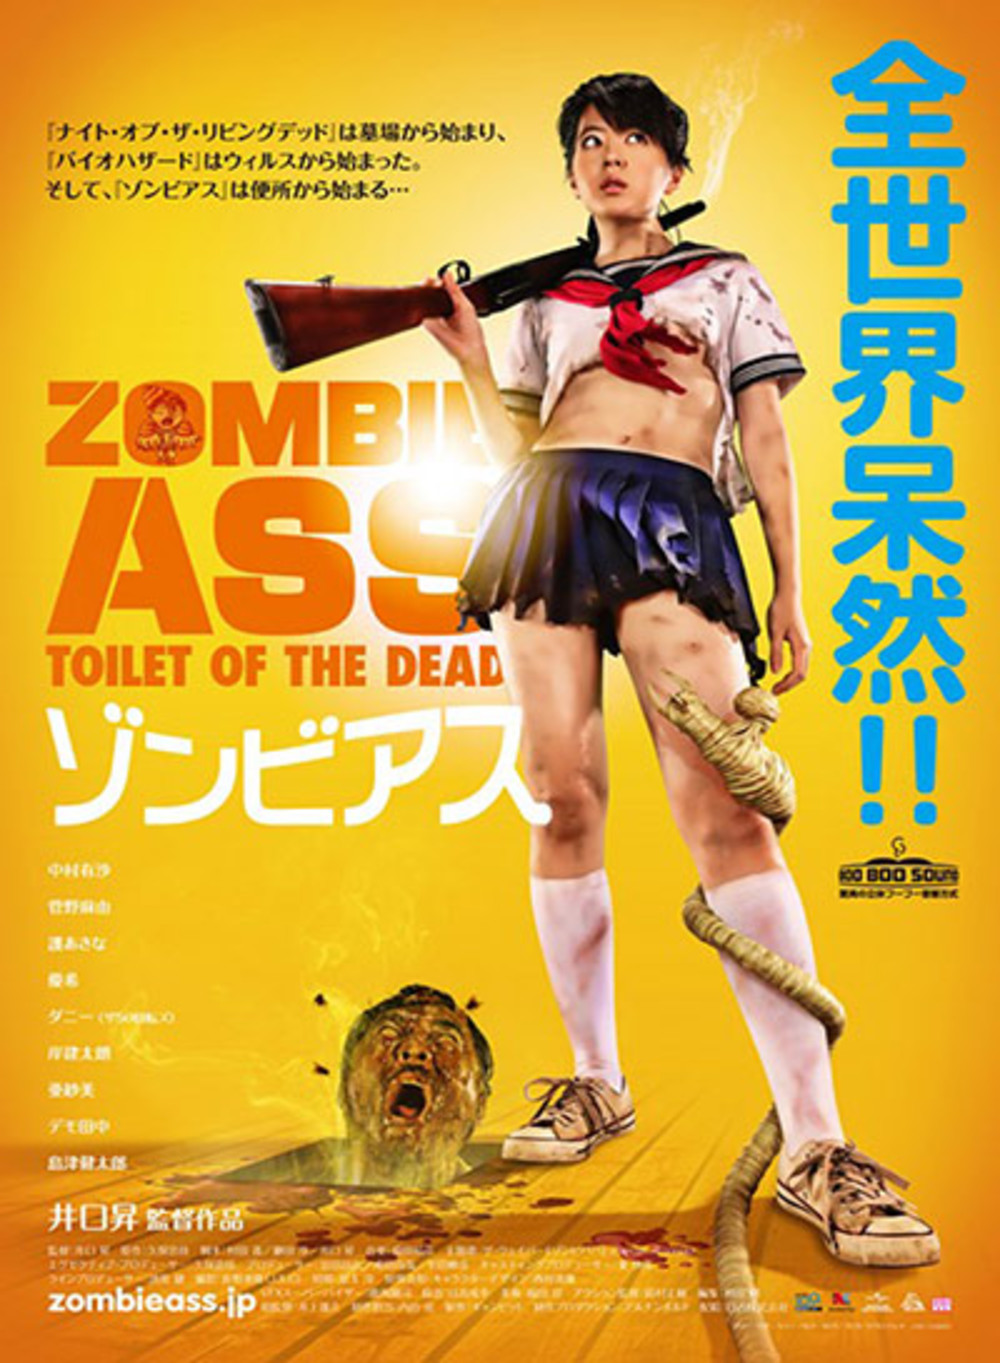 Zombie Ass Toilet Of The Dead